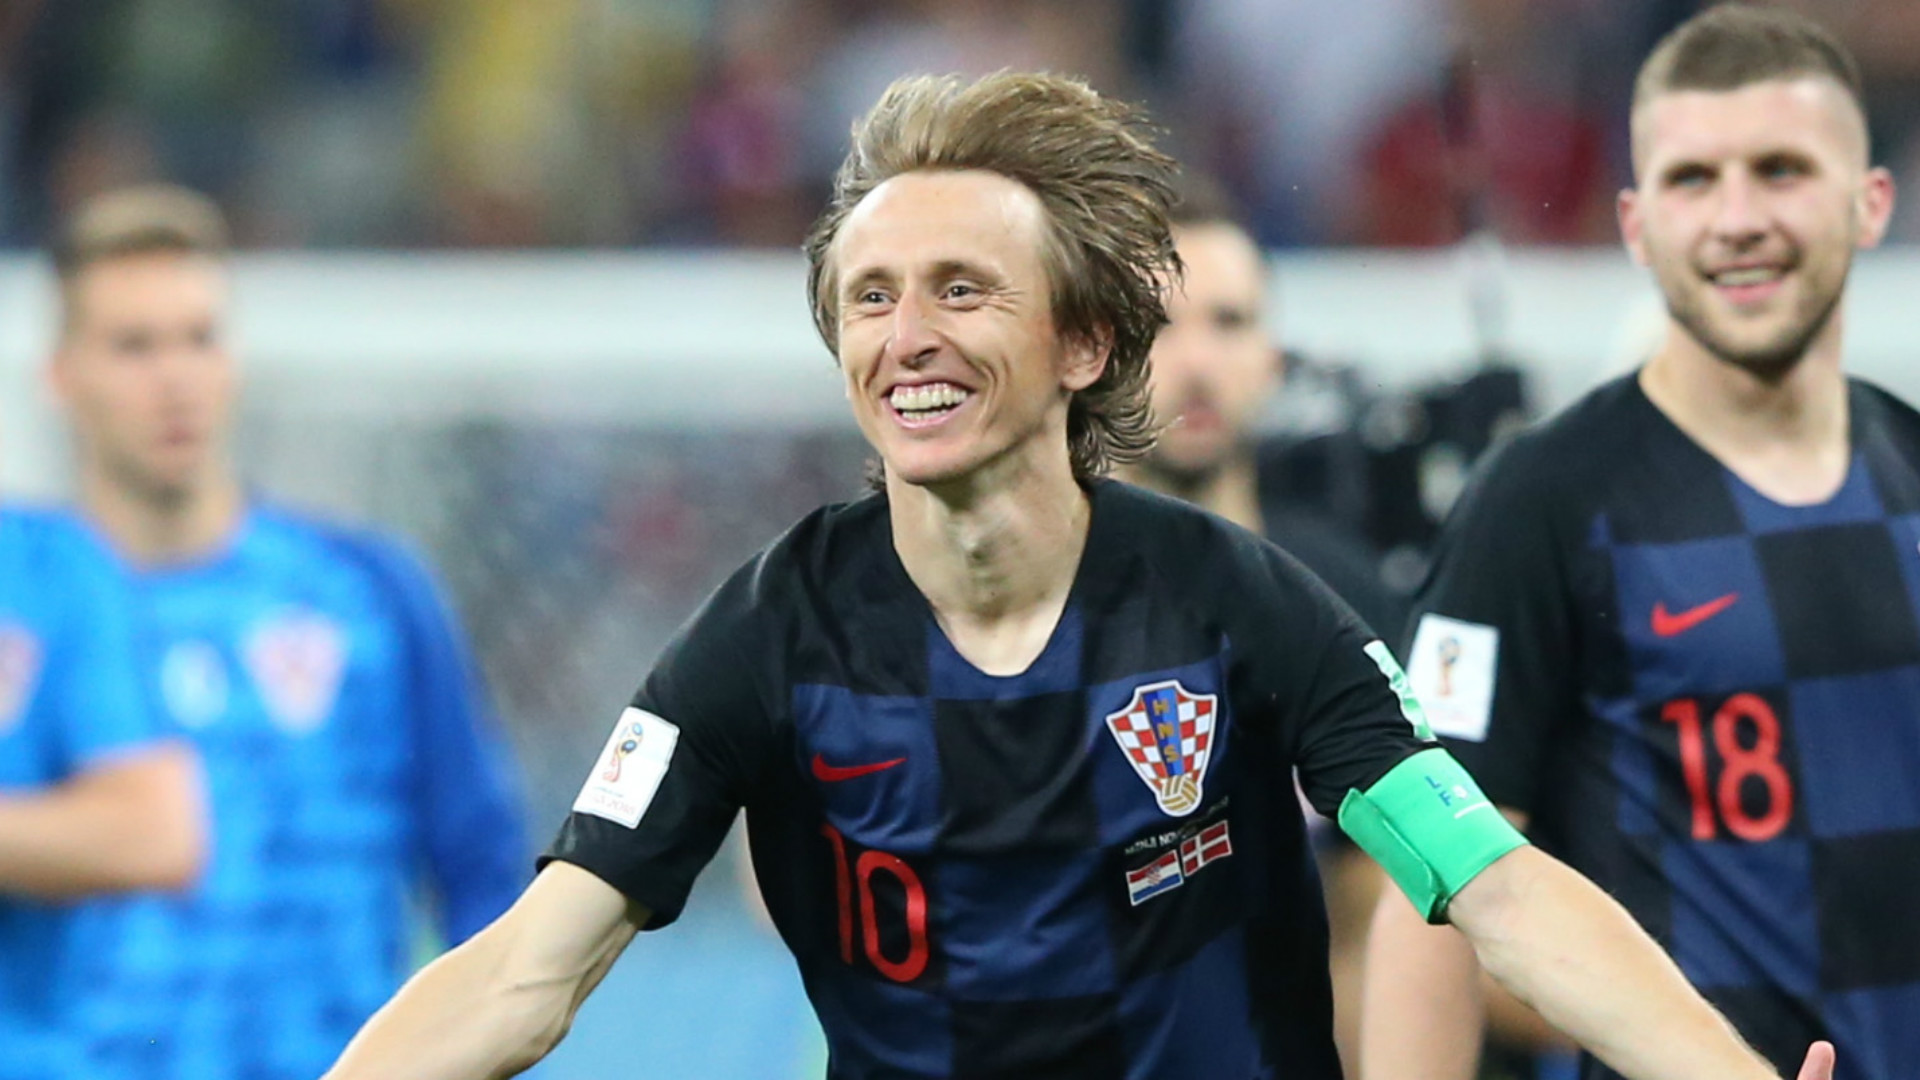 Croatia beat Russia on penalties to reach semis